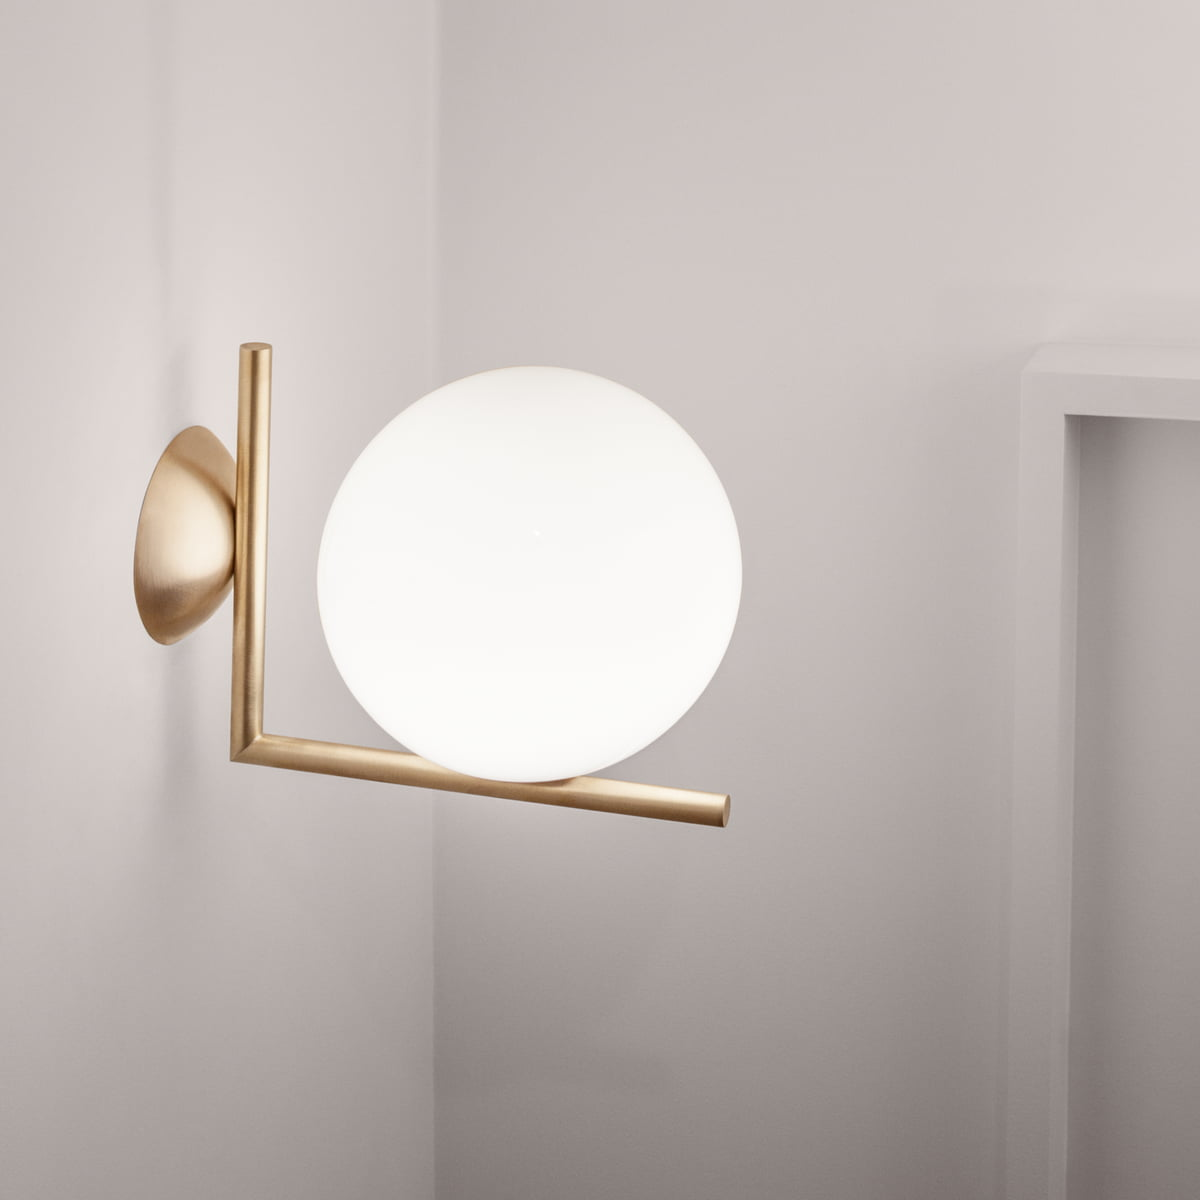 The Ic Wall And Ceiling Lamp By Flos